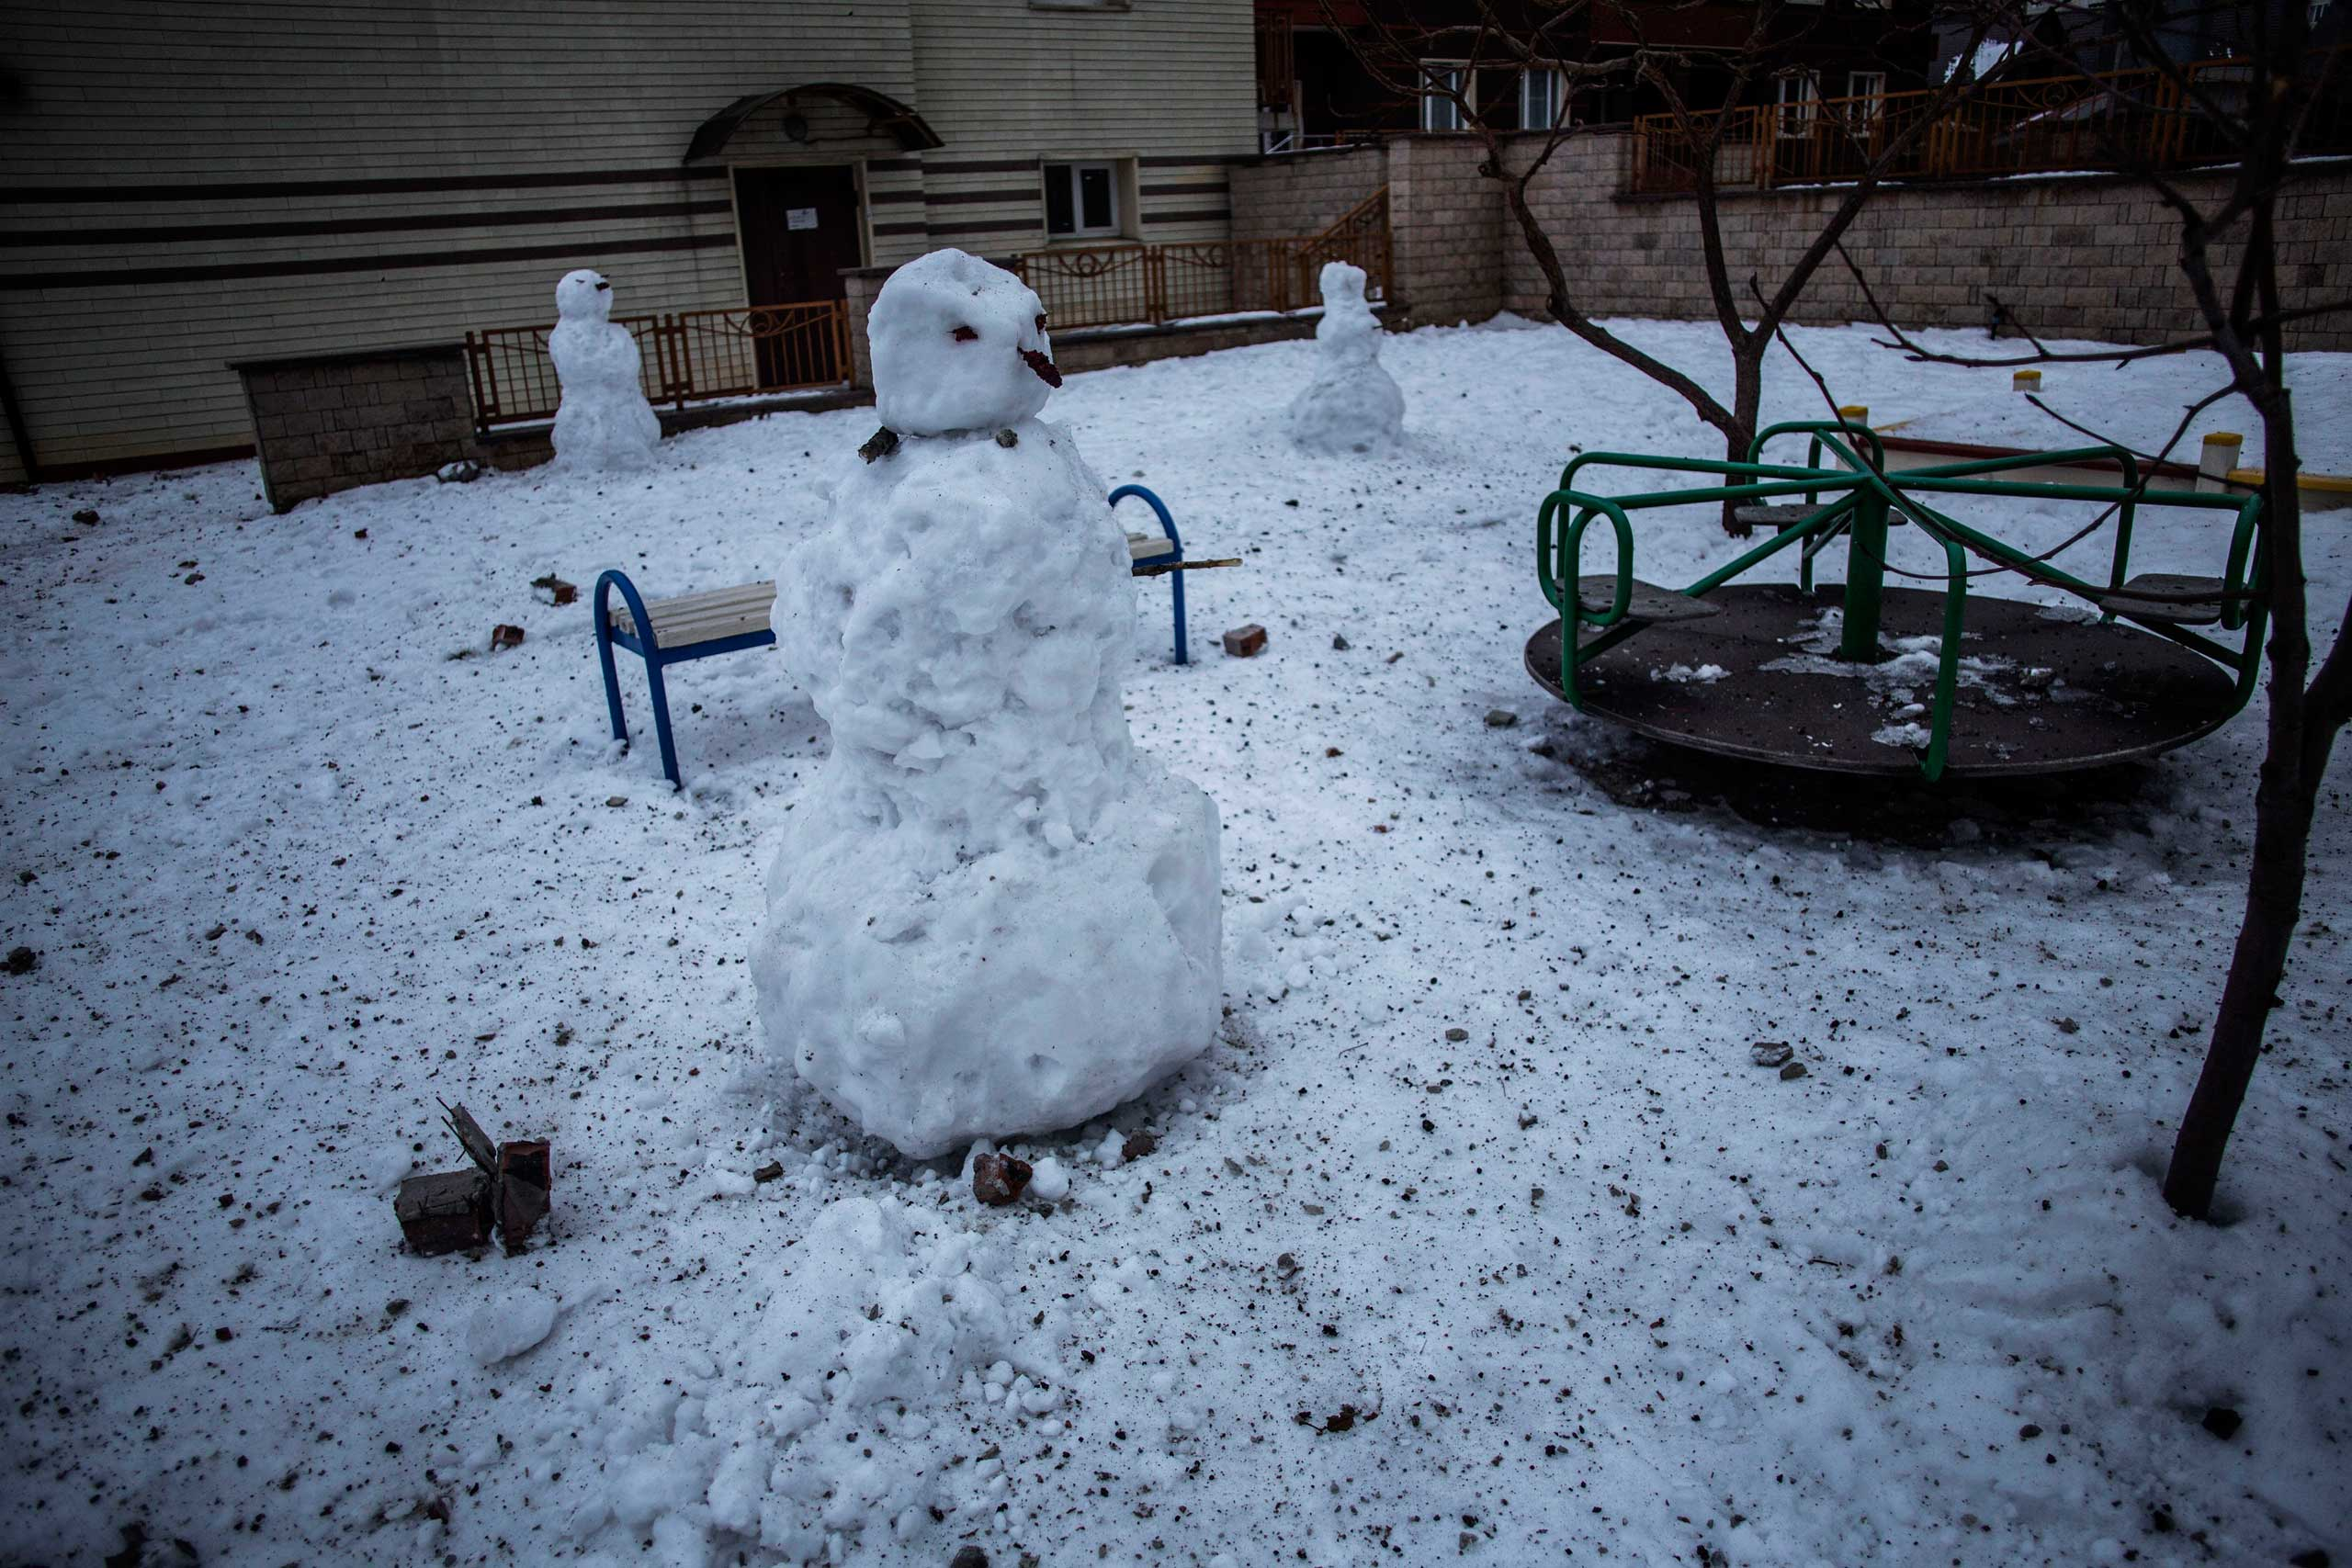 Snowmen hit by shrapnel and debris are seen in a deserted playground in the Voroshilovsky area,  in the center of Donetsk, Ukraine. Sunday, Jan. 18, 2015.